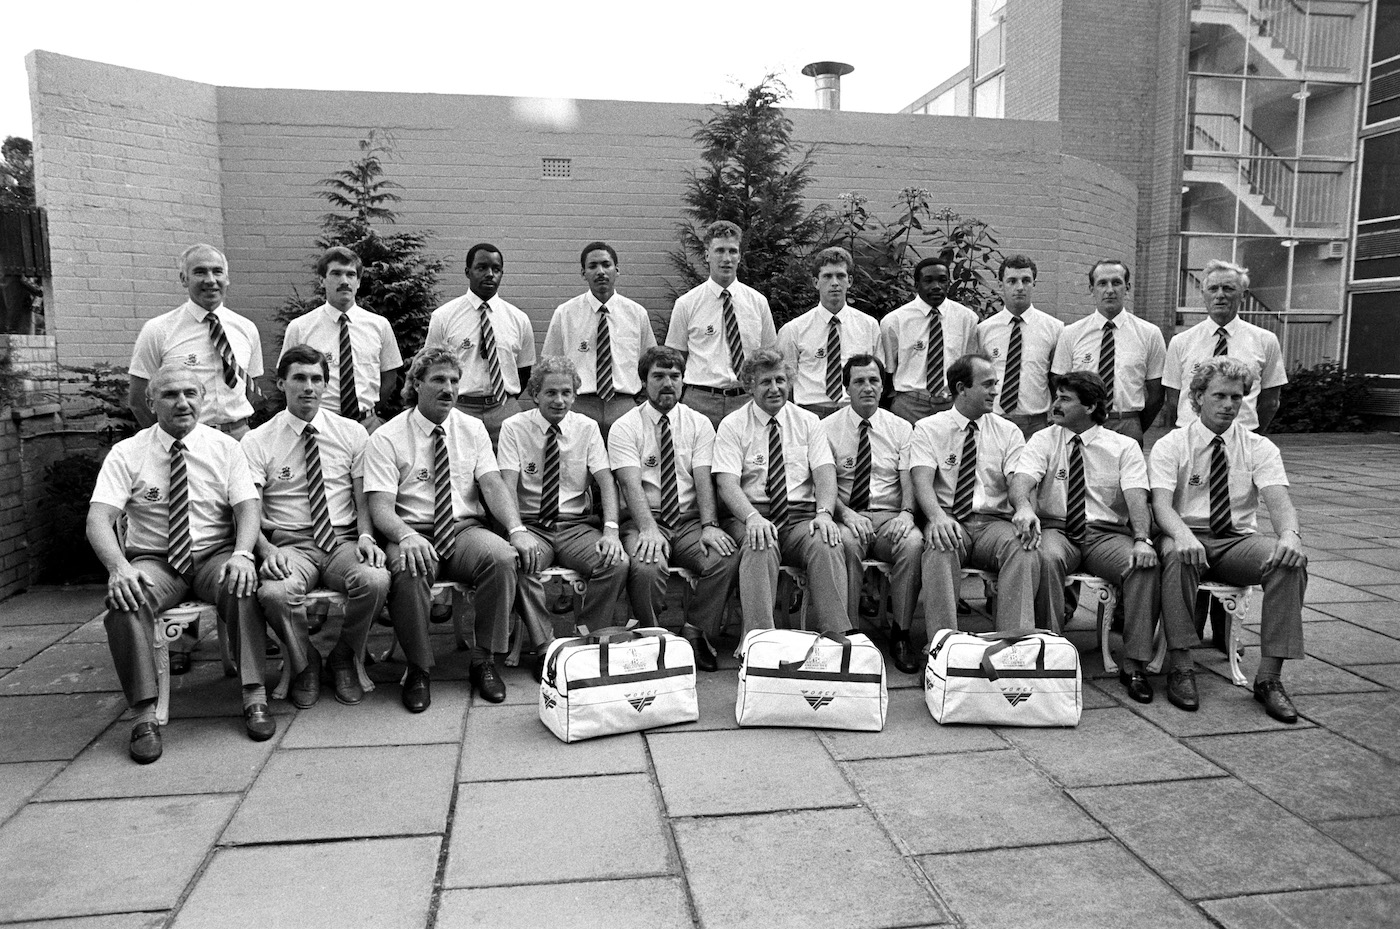 The England cricket team line up before leaving for Australia and the Ashes tour 1986/87